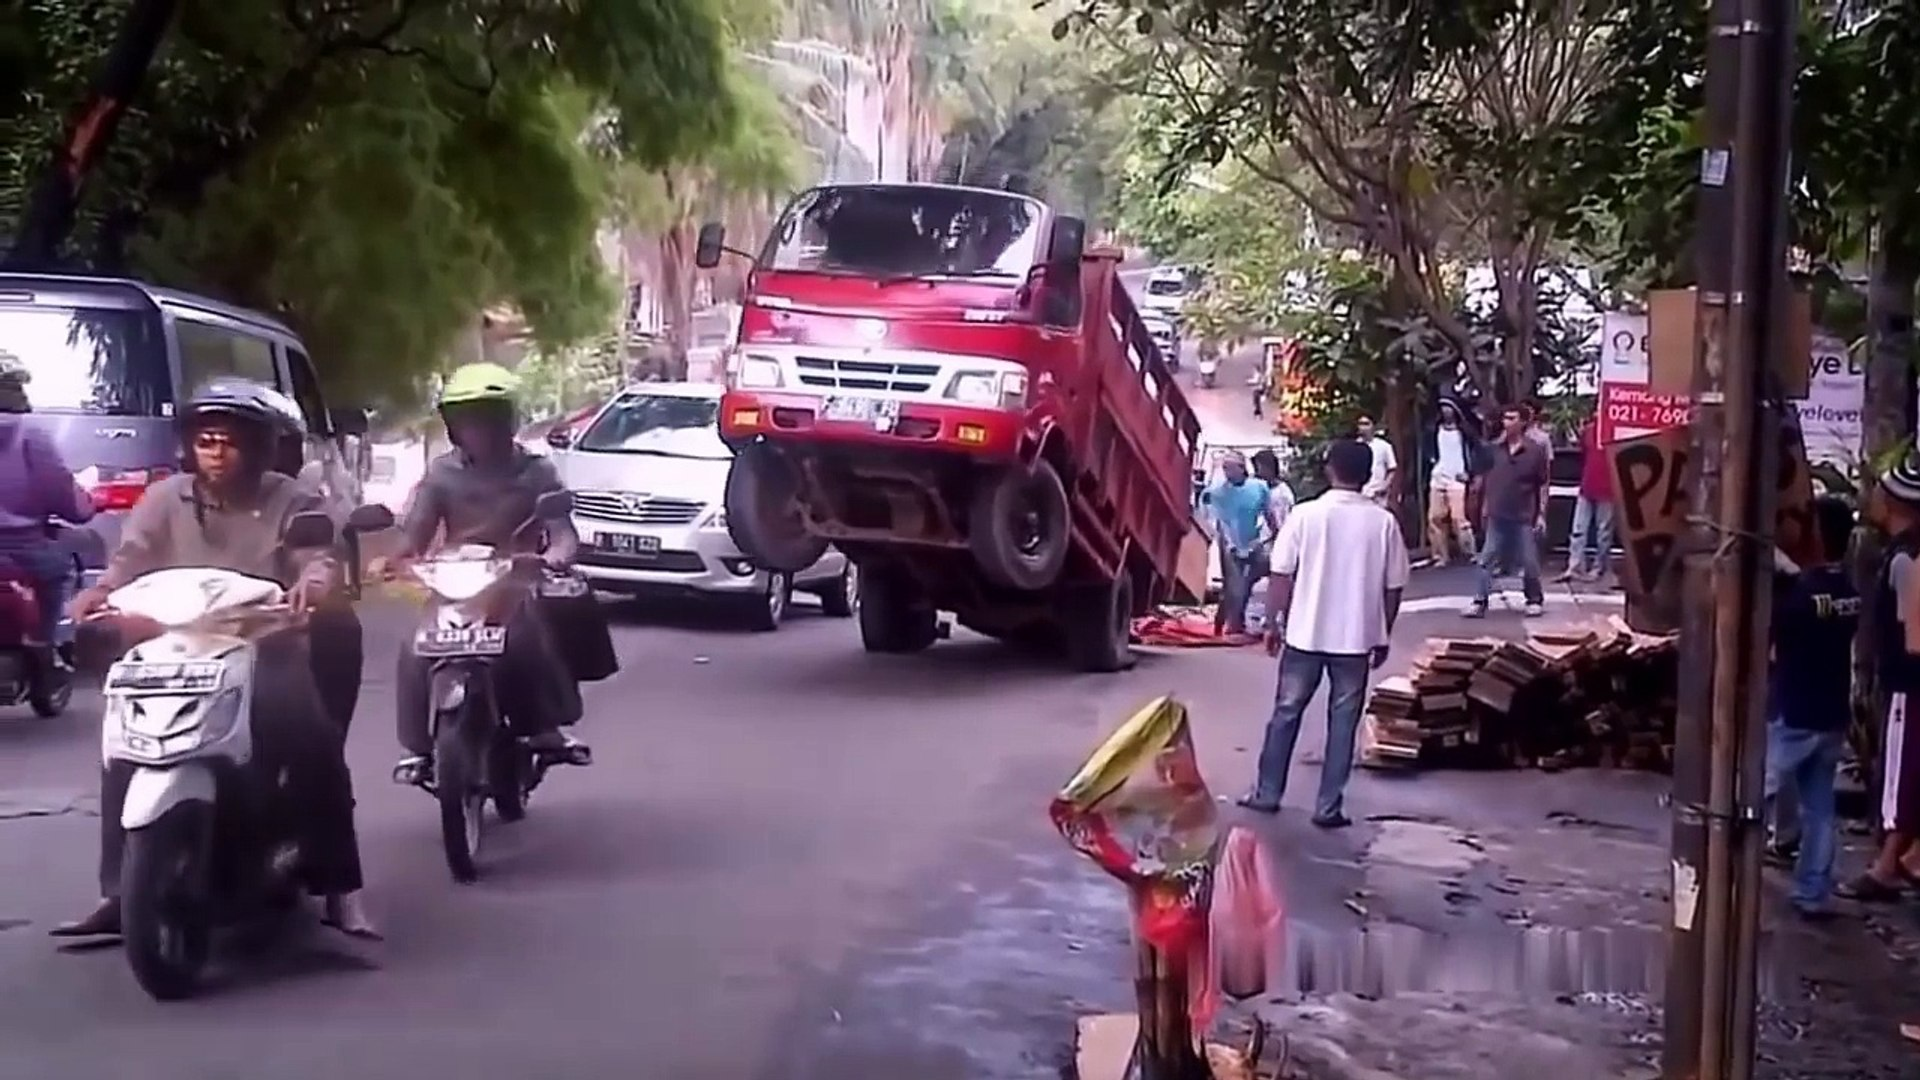 IDIOTS On Trucks 1 part - Compilation Videos Overloaded Trucks 2017 - Fails Trucks - Tipping Truck